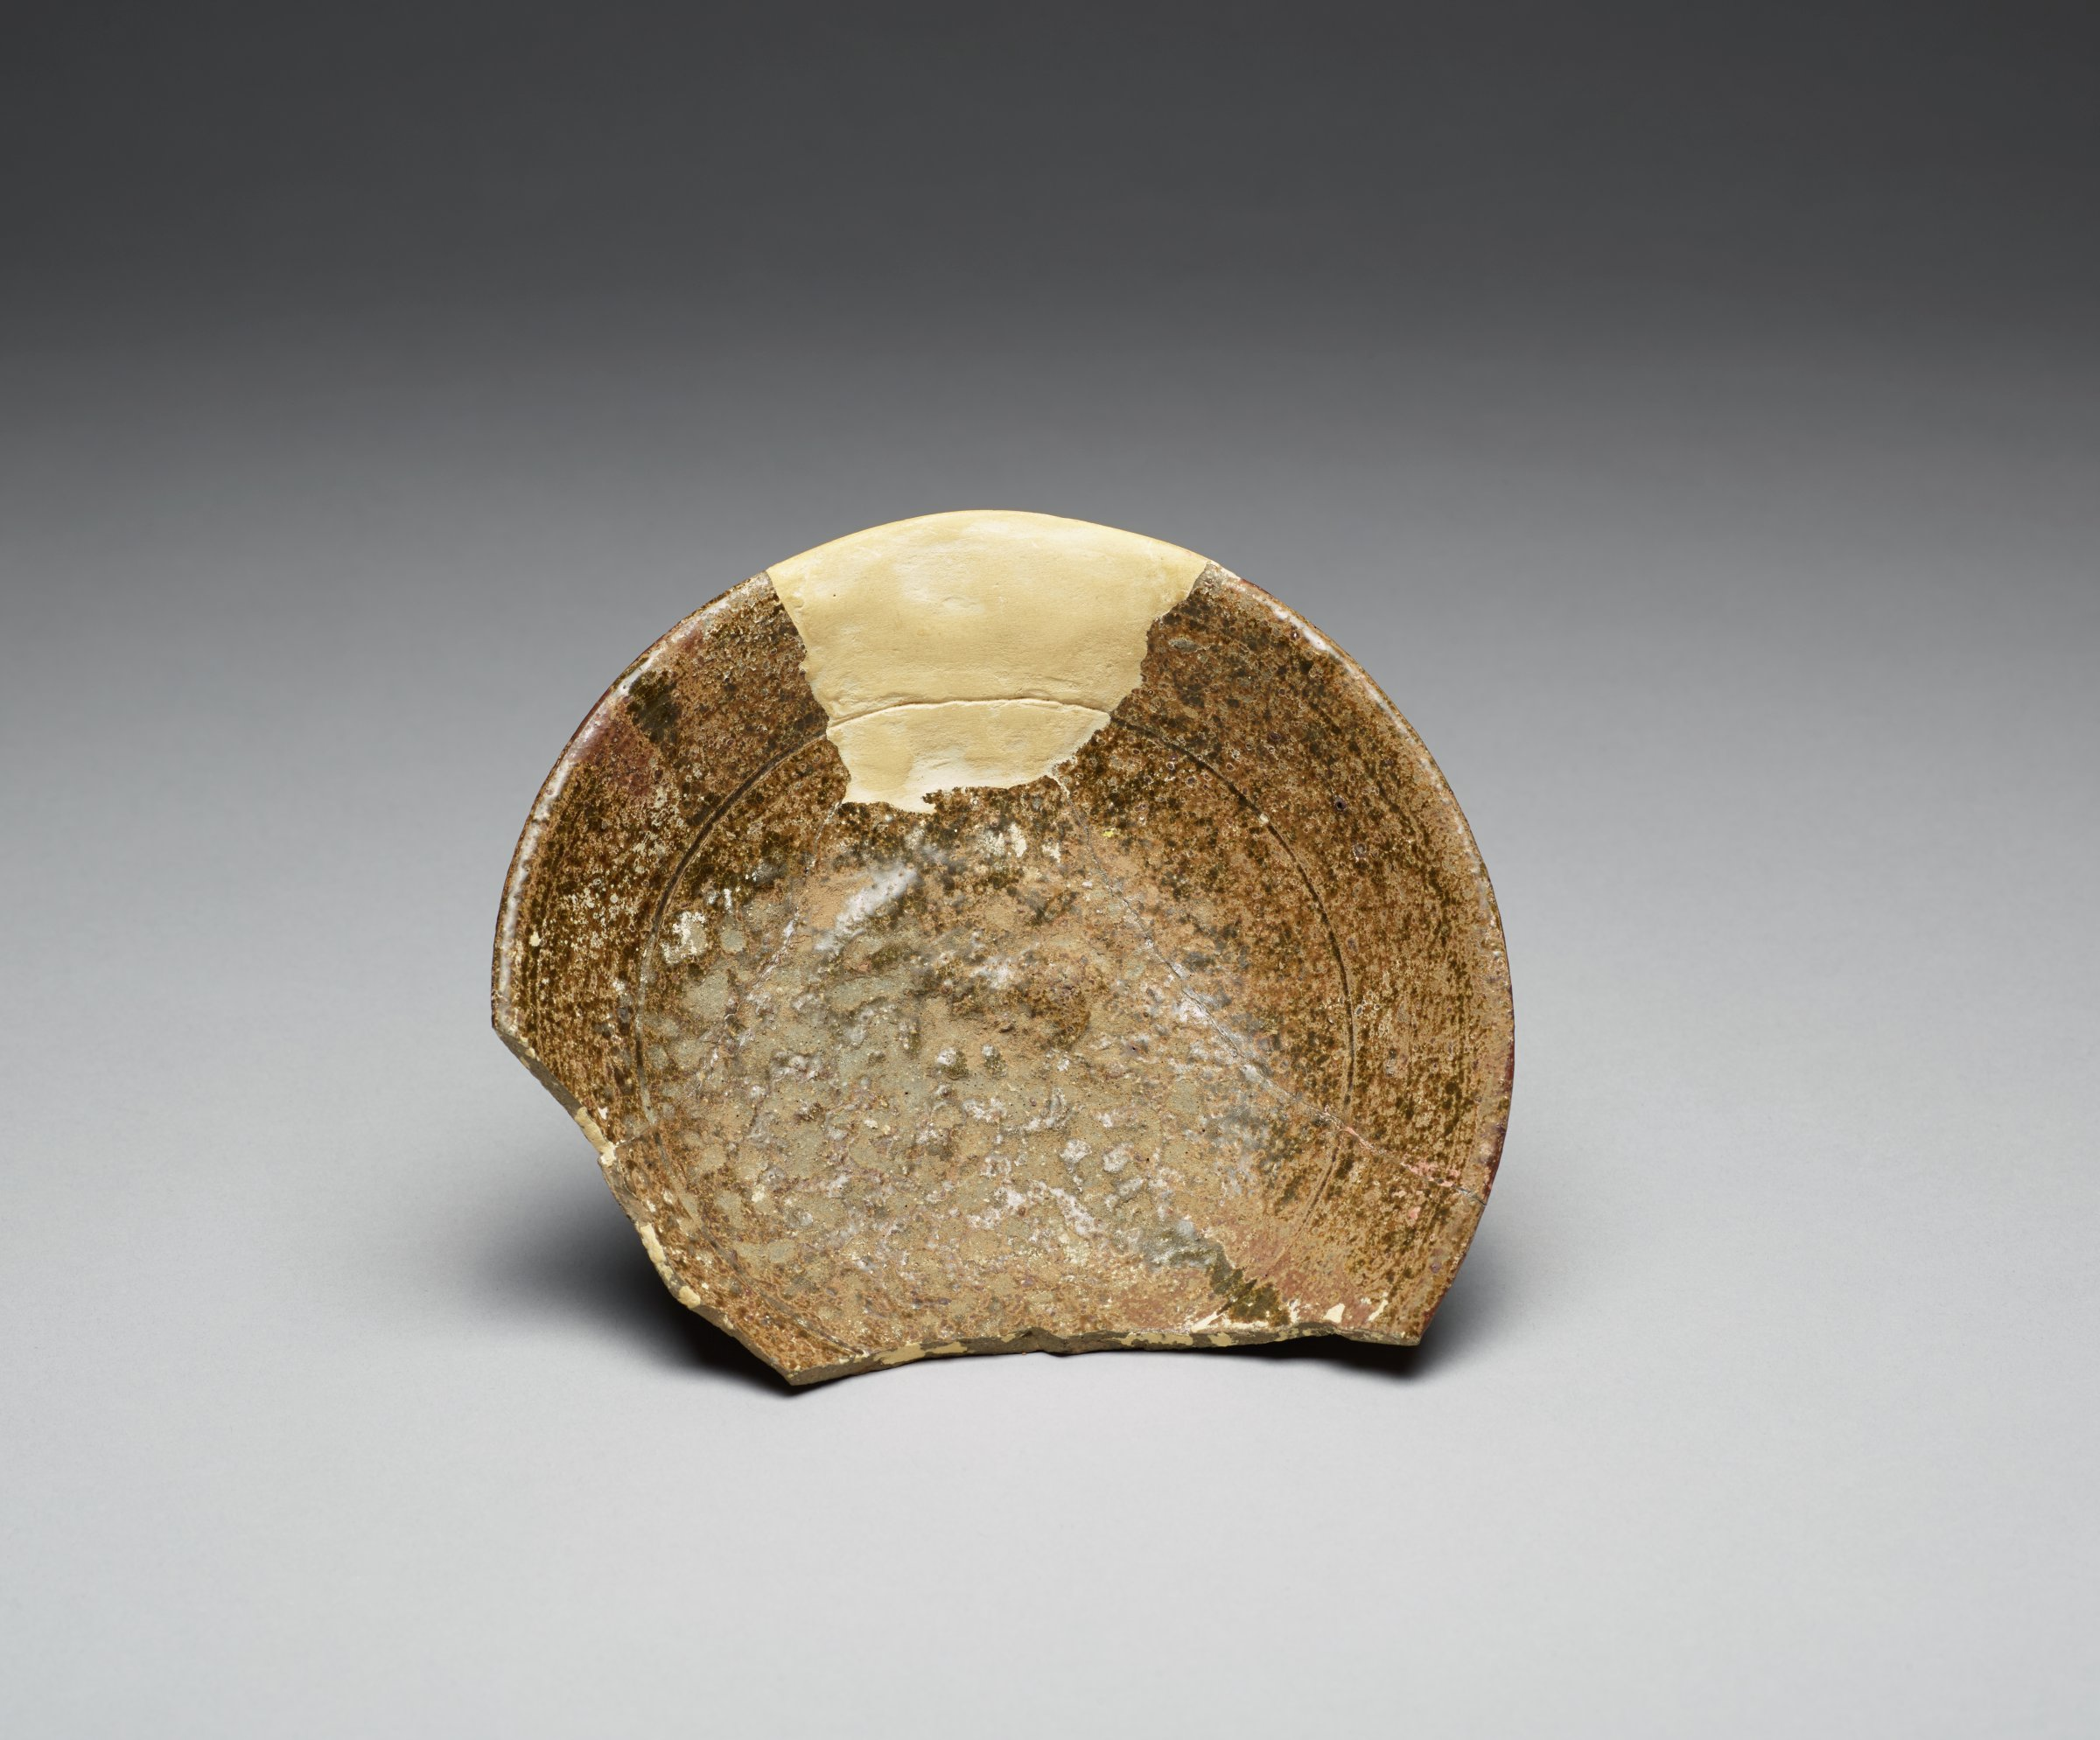 Footed Bowl Fragment with Brown Glaze